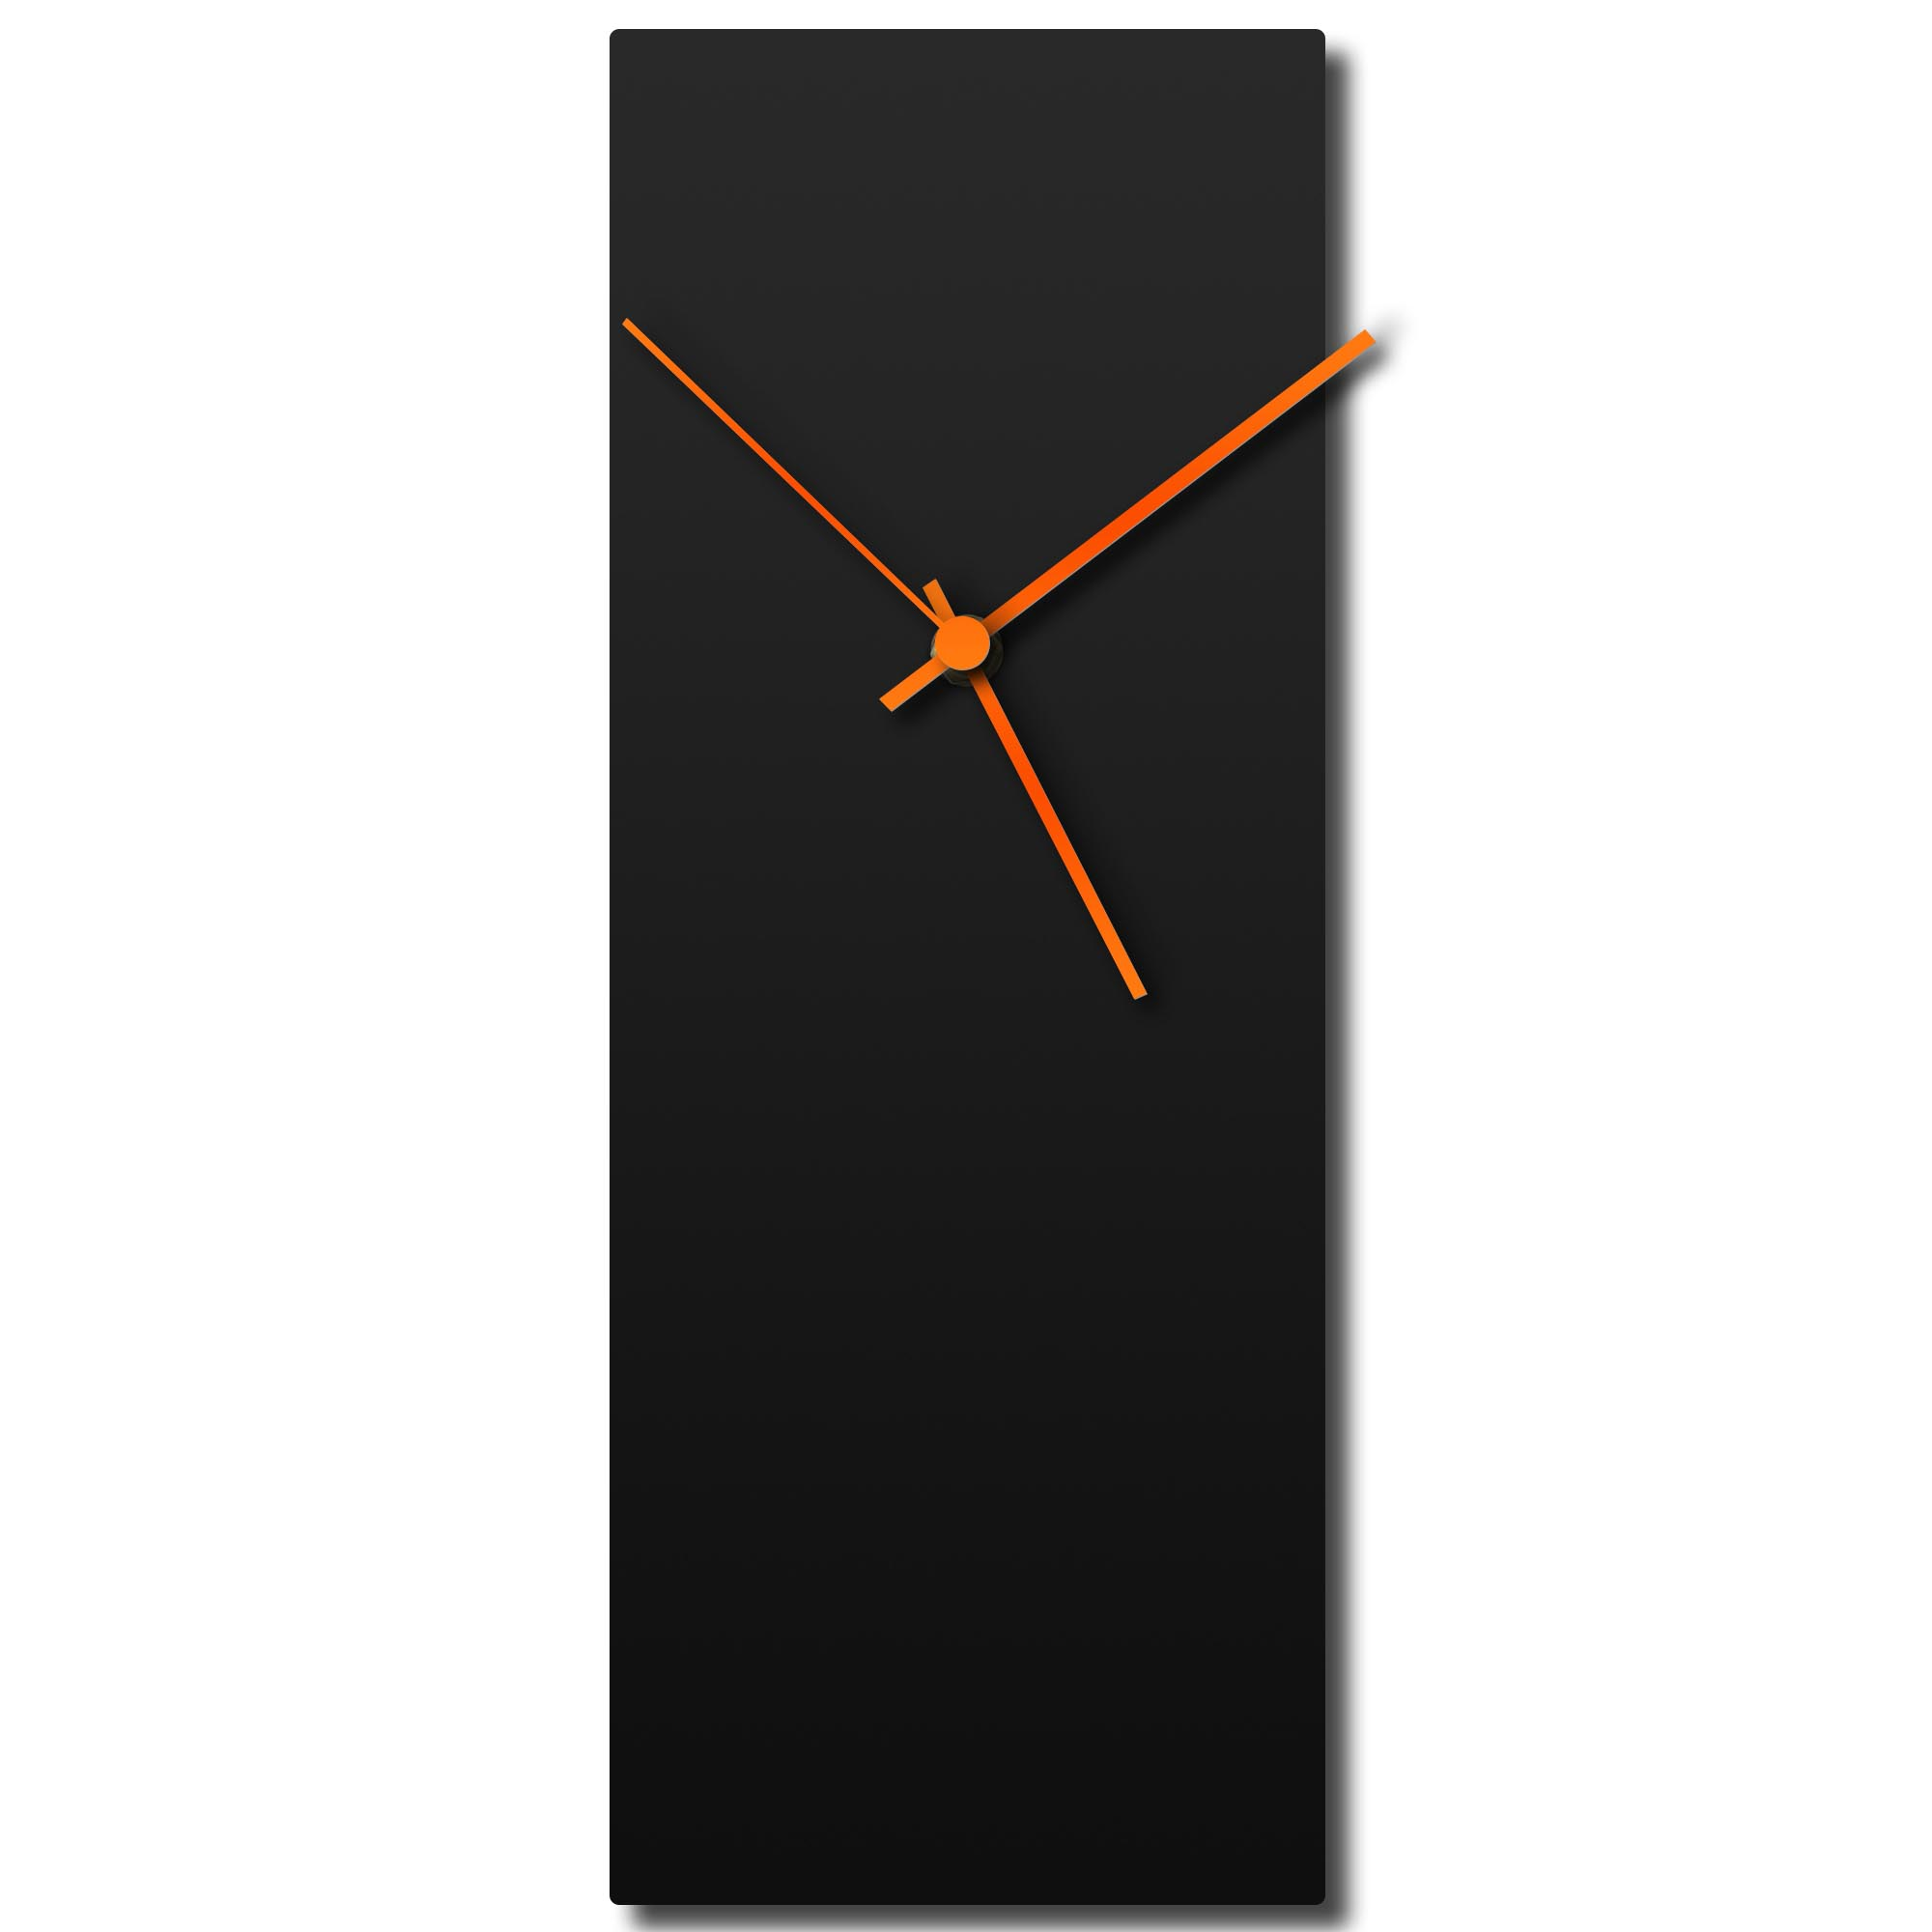 Blackout Orange Clock 6x16in. Aluminum Polymetal